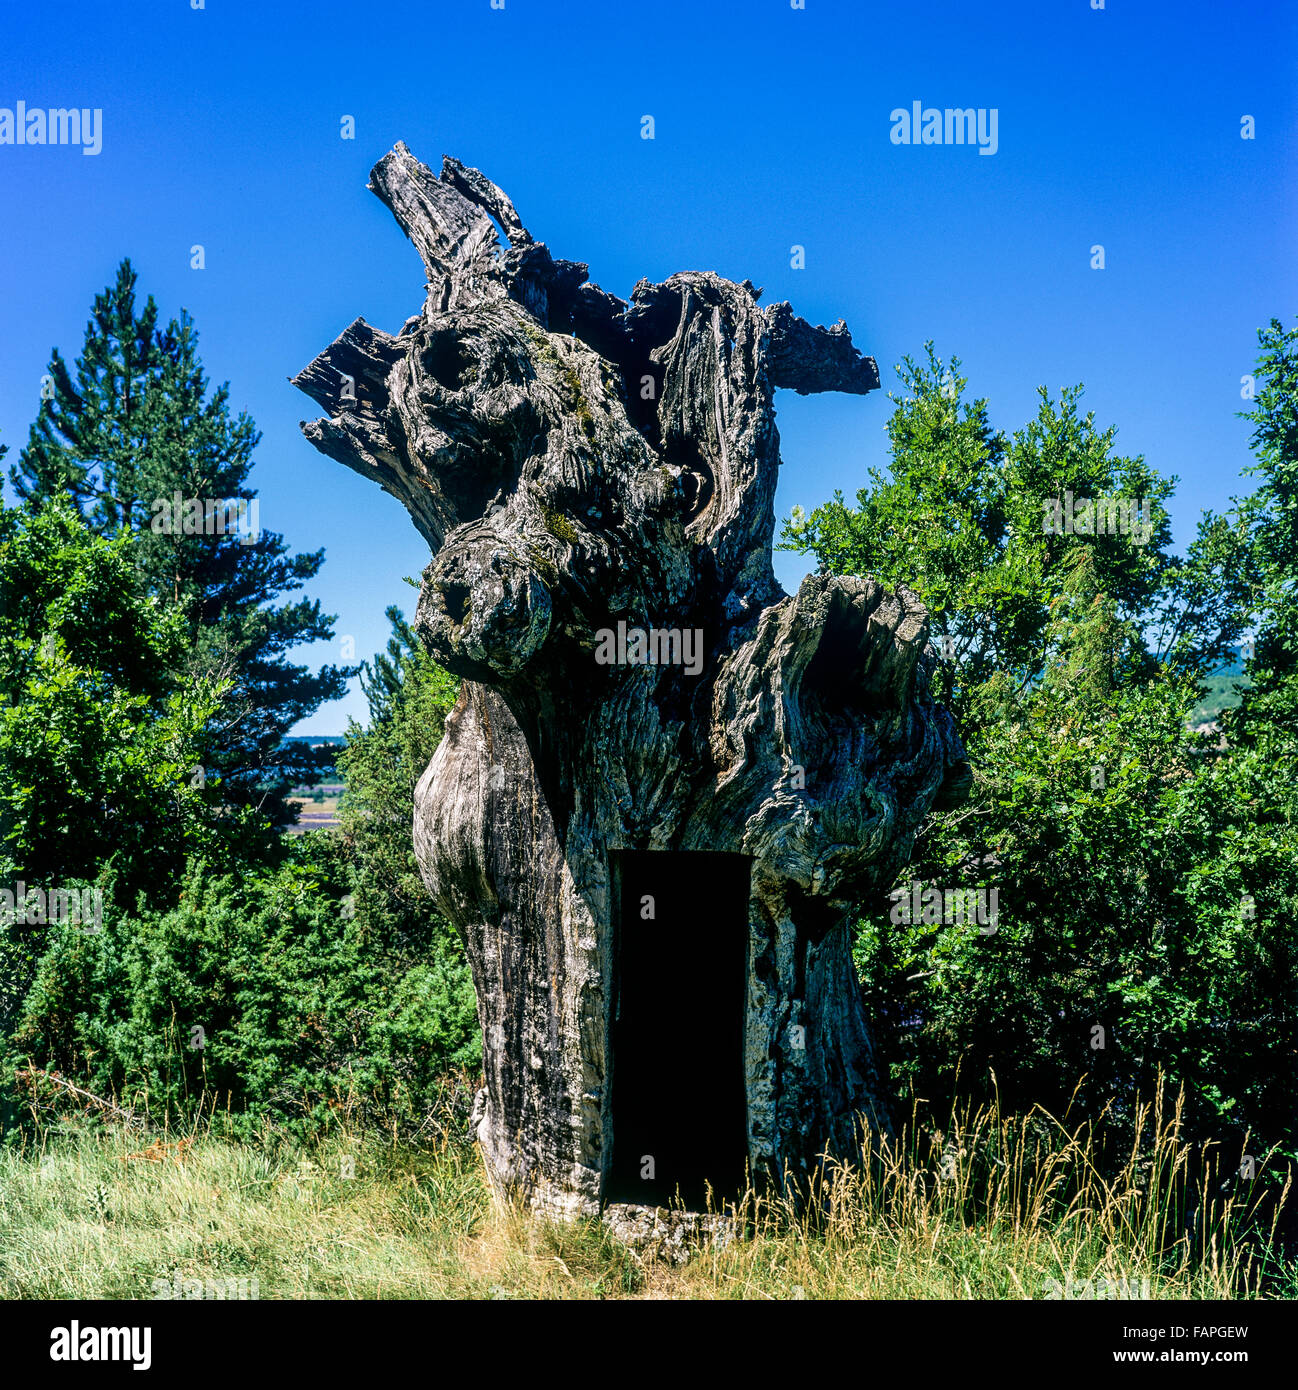 Dead tree trunk with a cut-out, Vaucluse, Provence, France - Stock Image